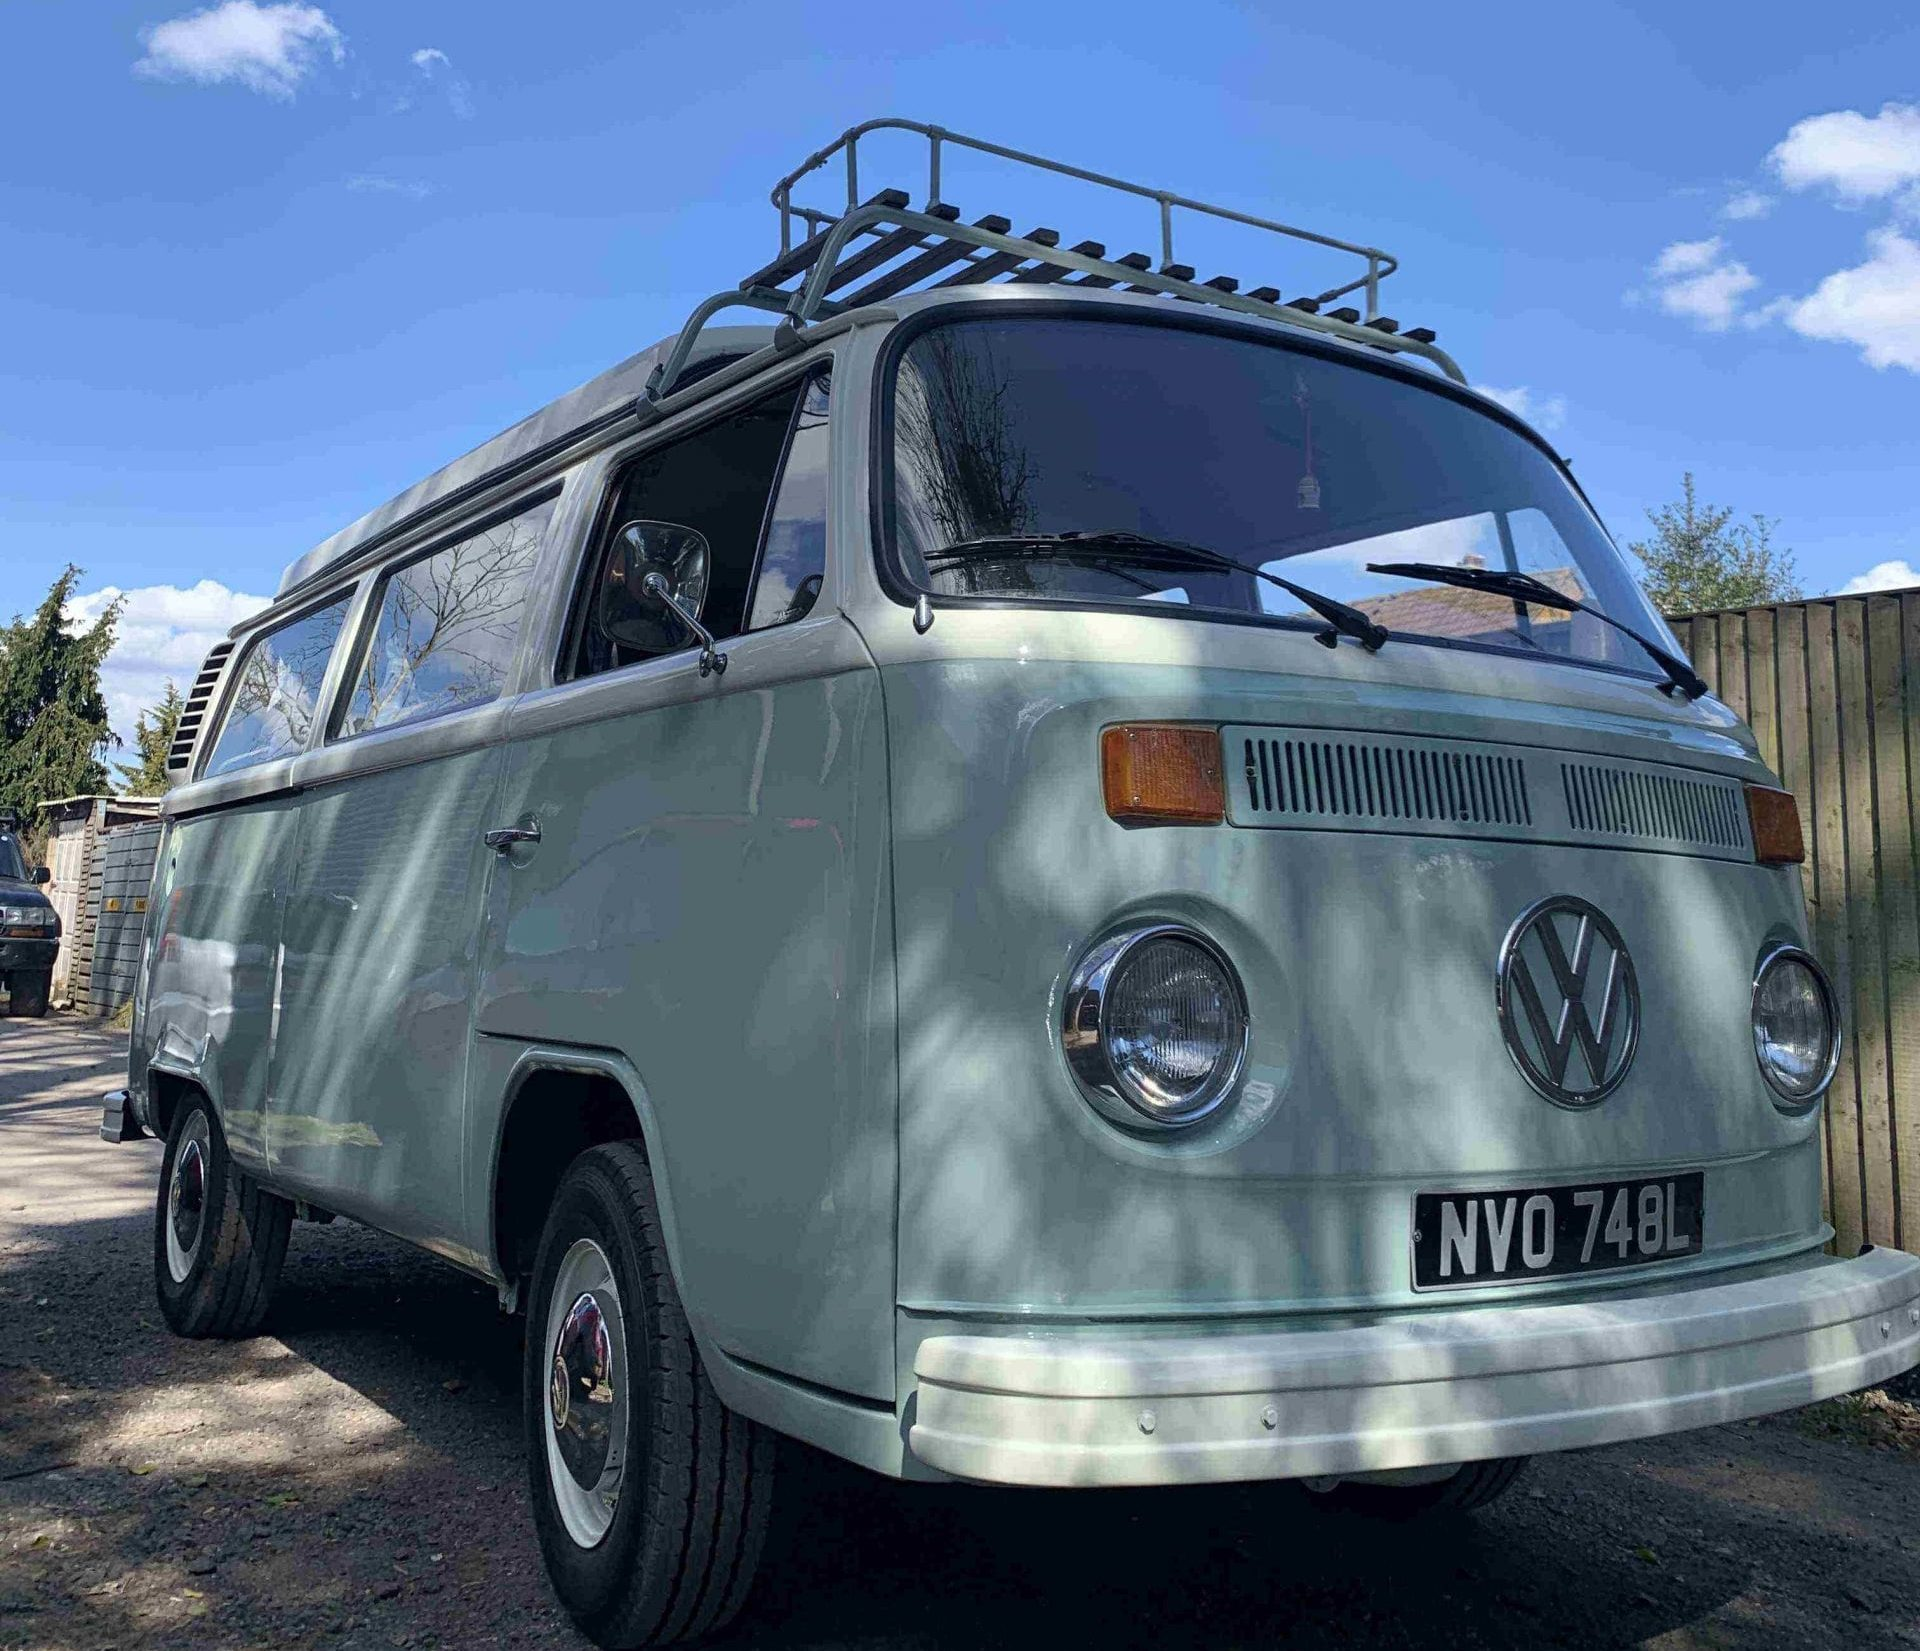 London Campervan Hire